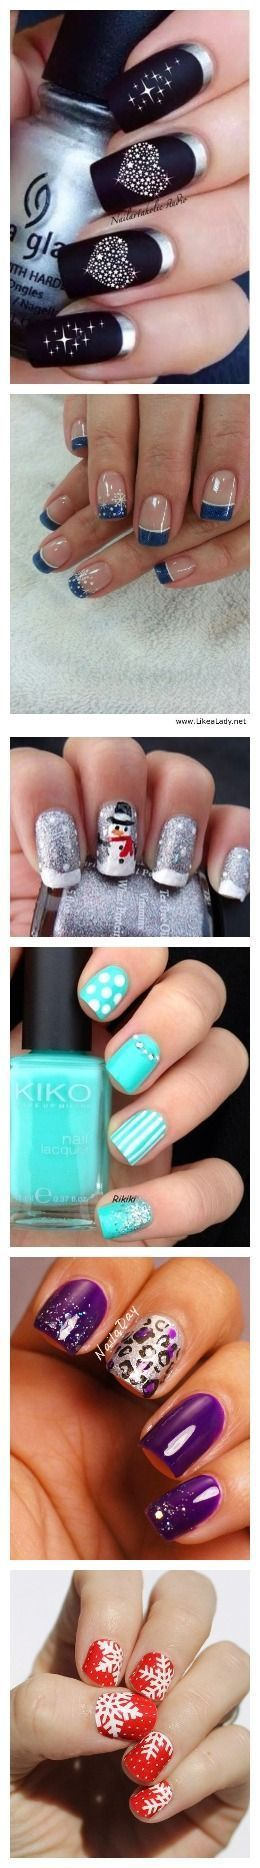 Image via christmas by jauntyjuli #nail #nails #nailart Image via COOL CHRISTMAS NAIL ART DESIGNS 2016 Image via Digg Women's Fashion: Nail Polishes of the Year   Ima Read More Source: – lylajimenez Related